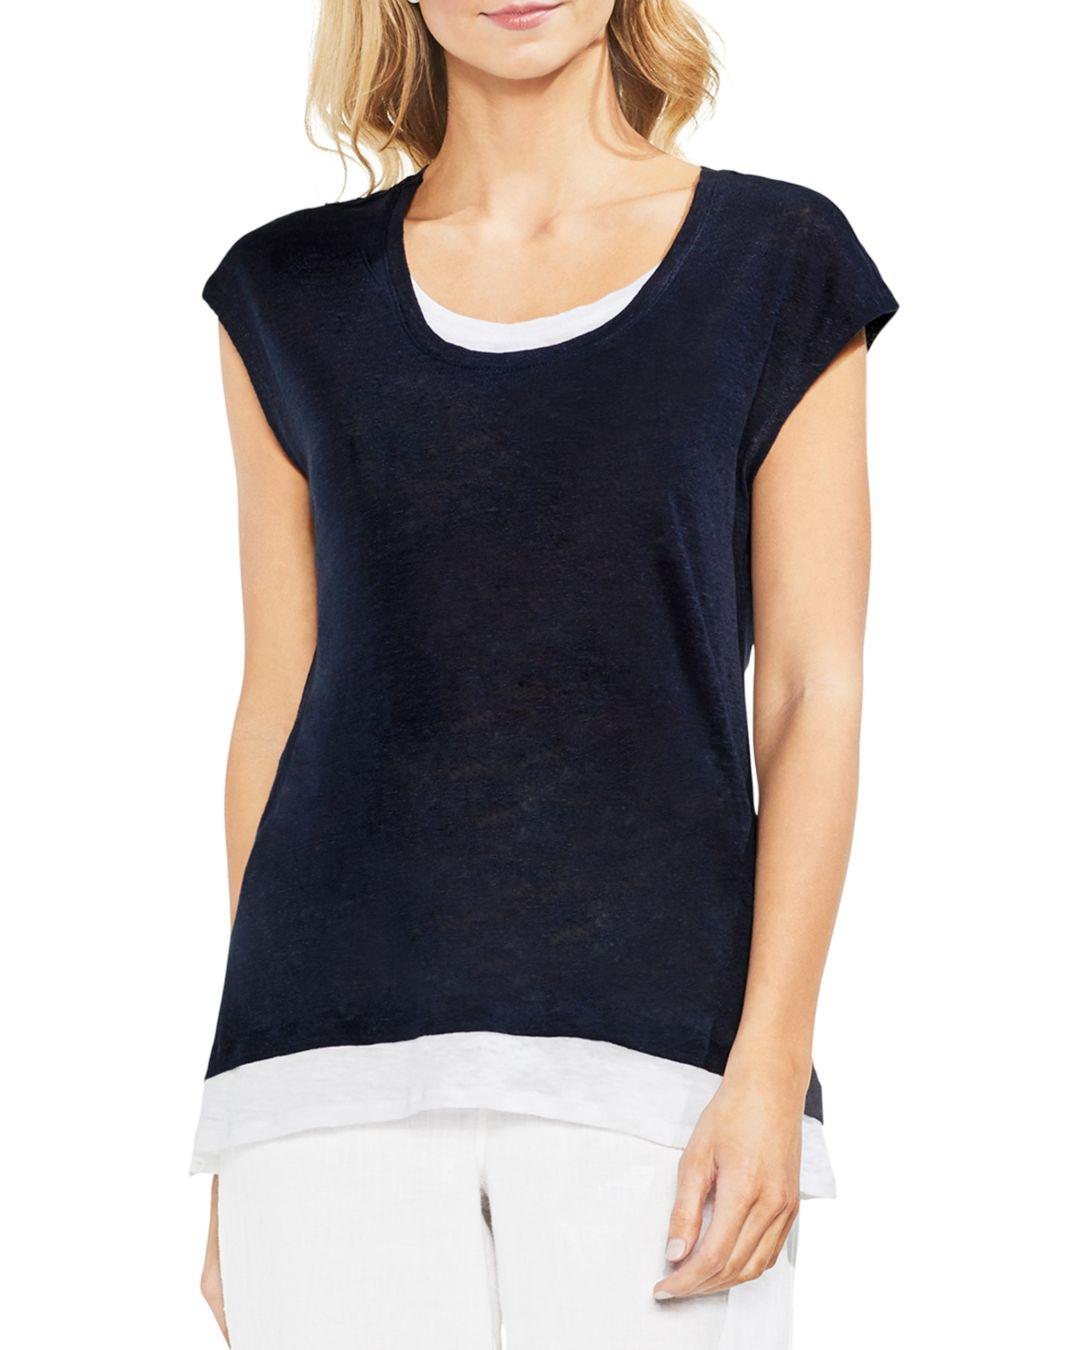 d7c726494c11c Vince Camuto Linen Layered-look Tee in Blue - Lyst